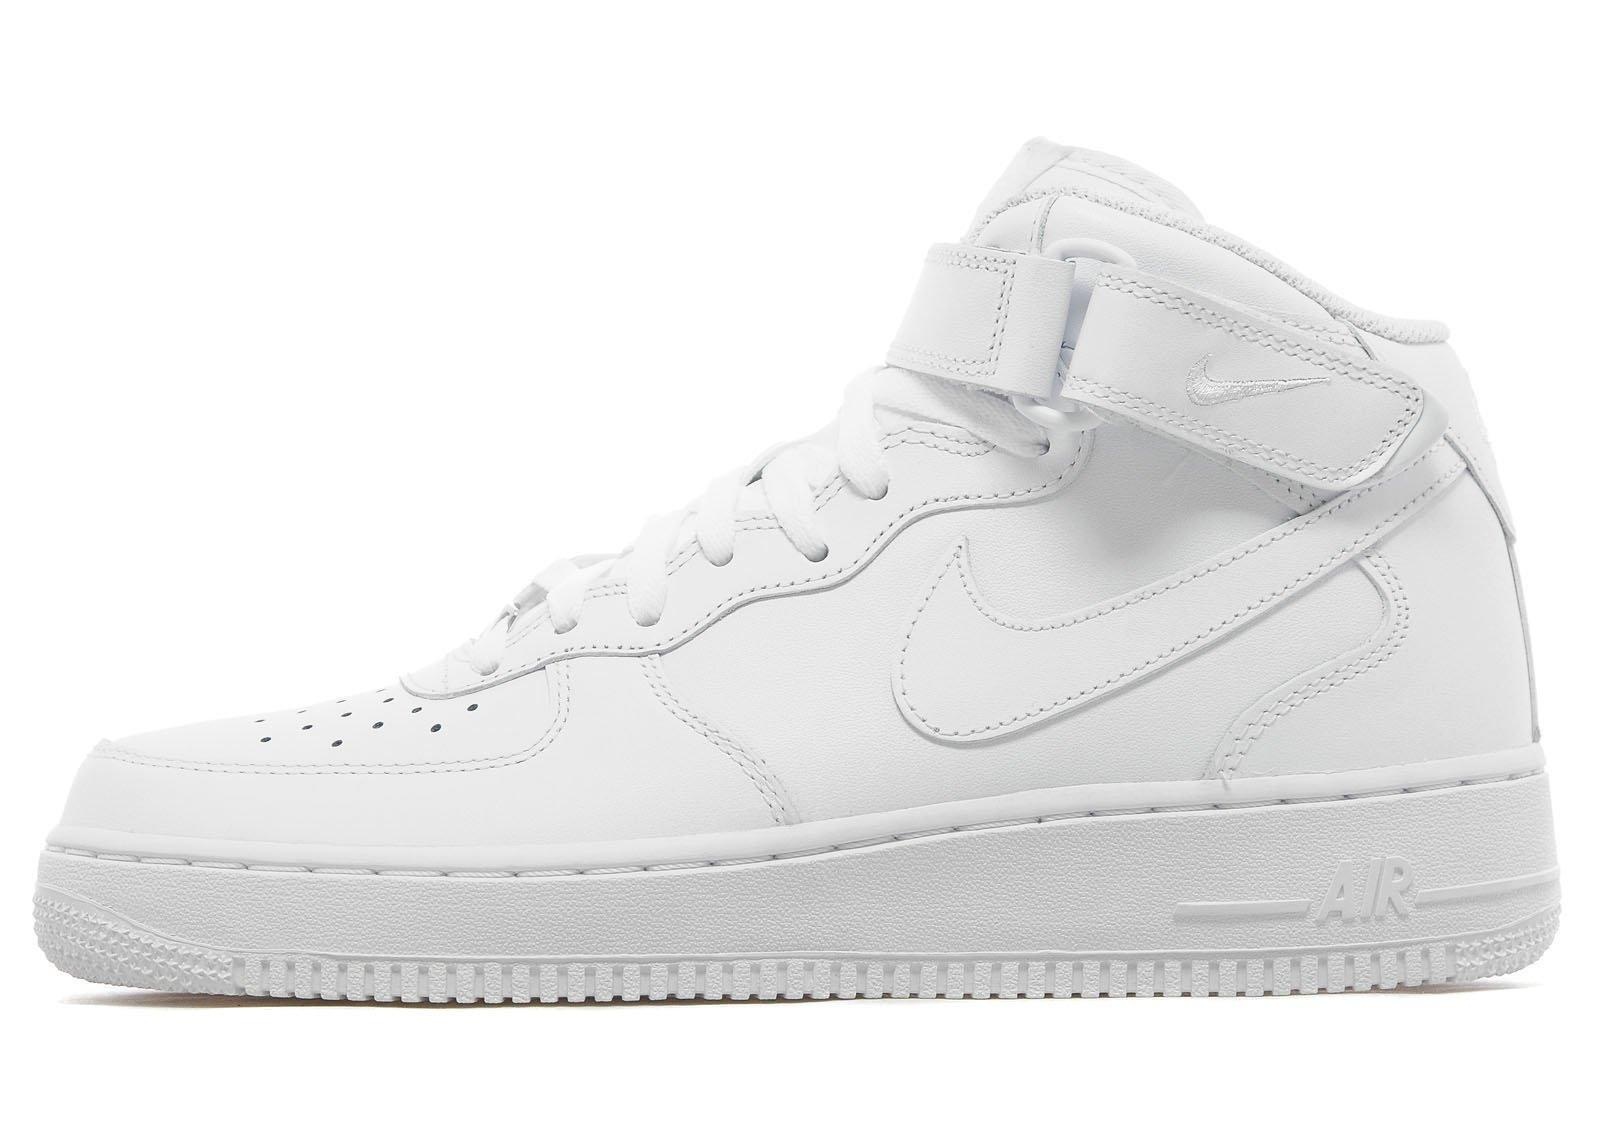 nike air force 1 mid white jd